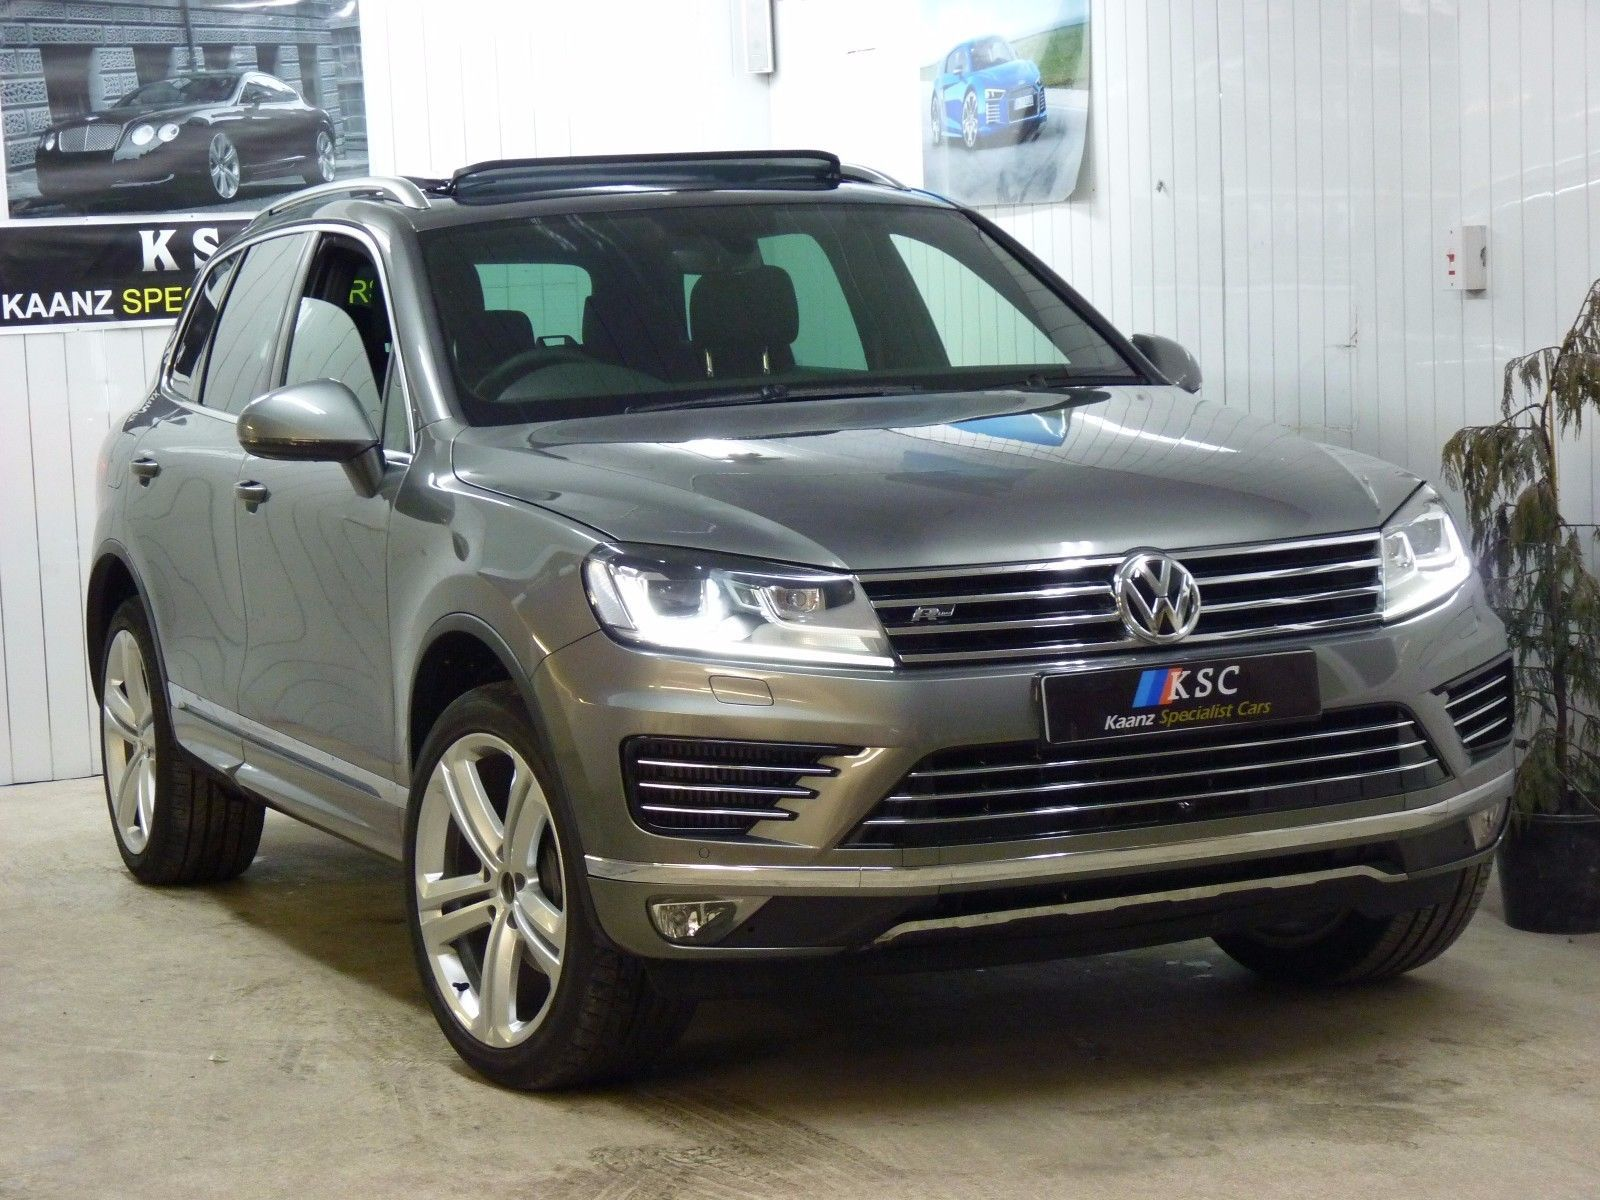 Ebay 2017 Volkswagen Touareg 3 0 Tdi R Line Plus Tiptronic 4x4 Damaged Repaired